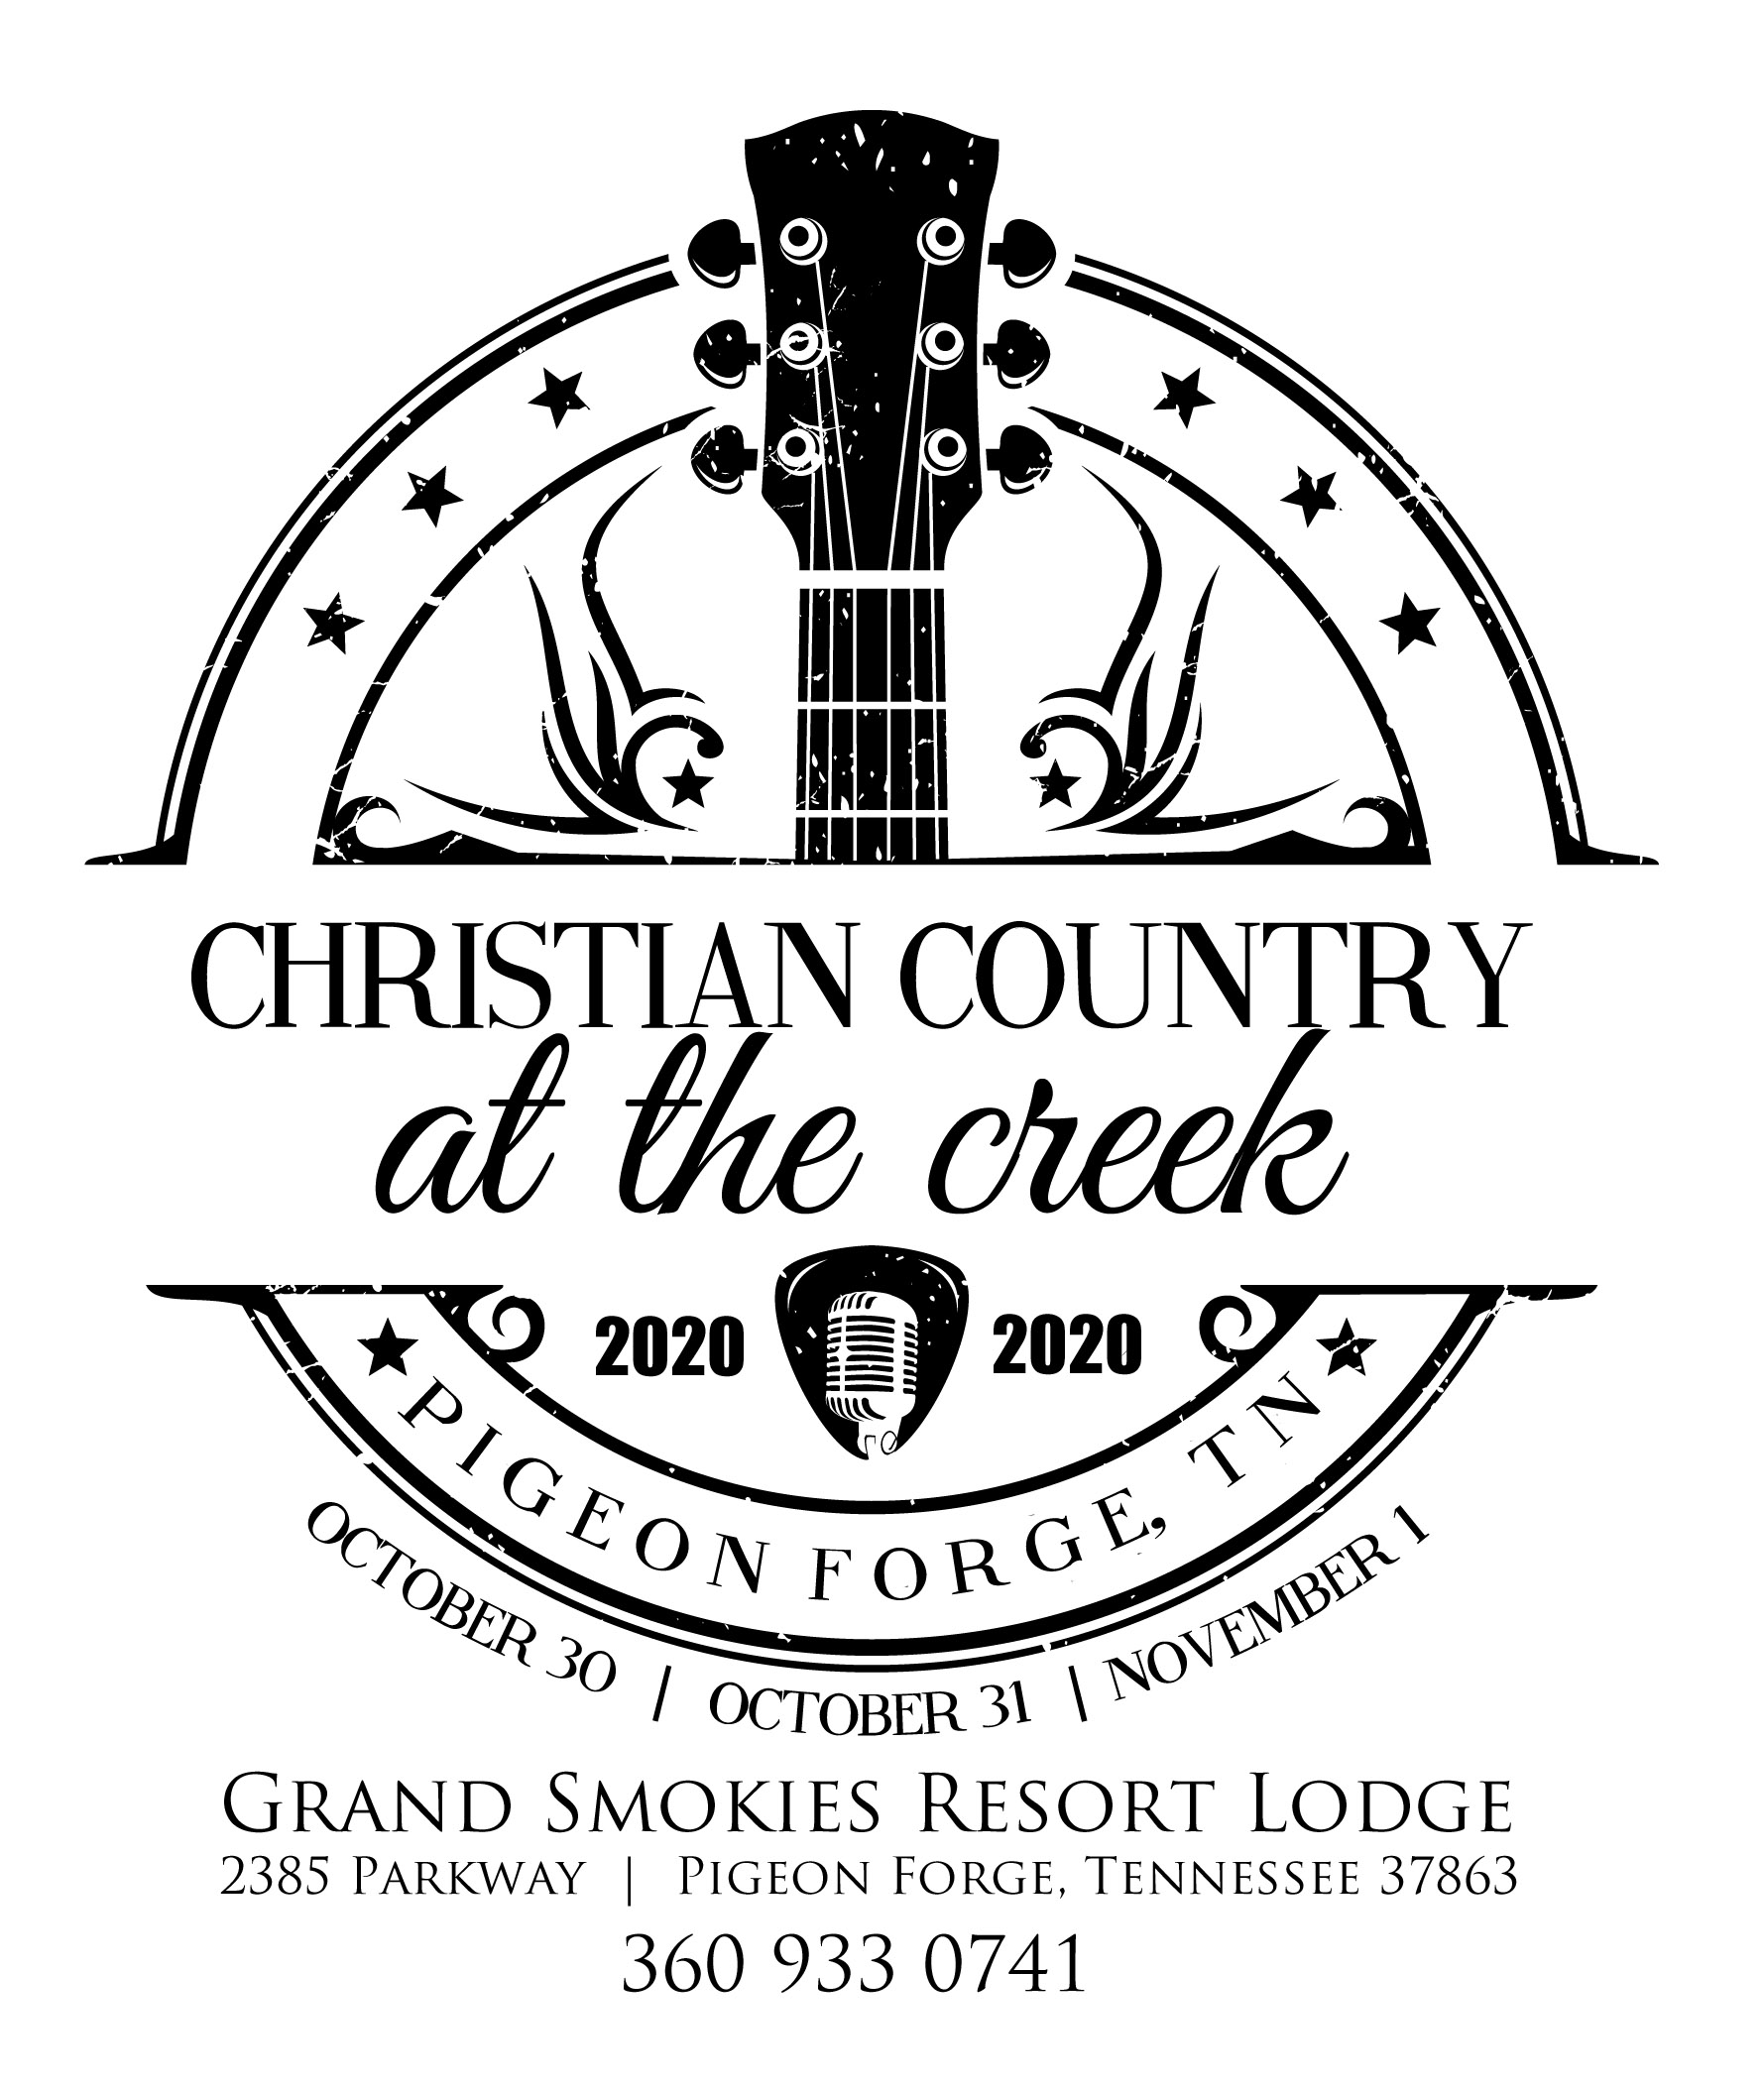 Christian Country At The Creek Returns To Pigeon Forge In 2020